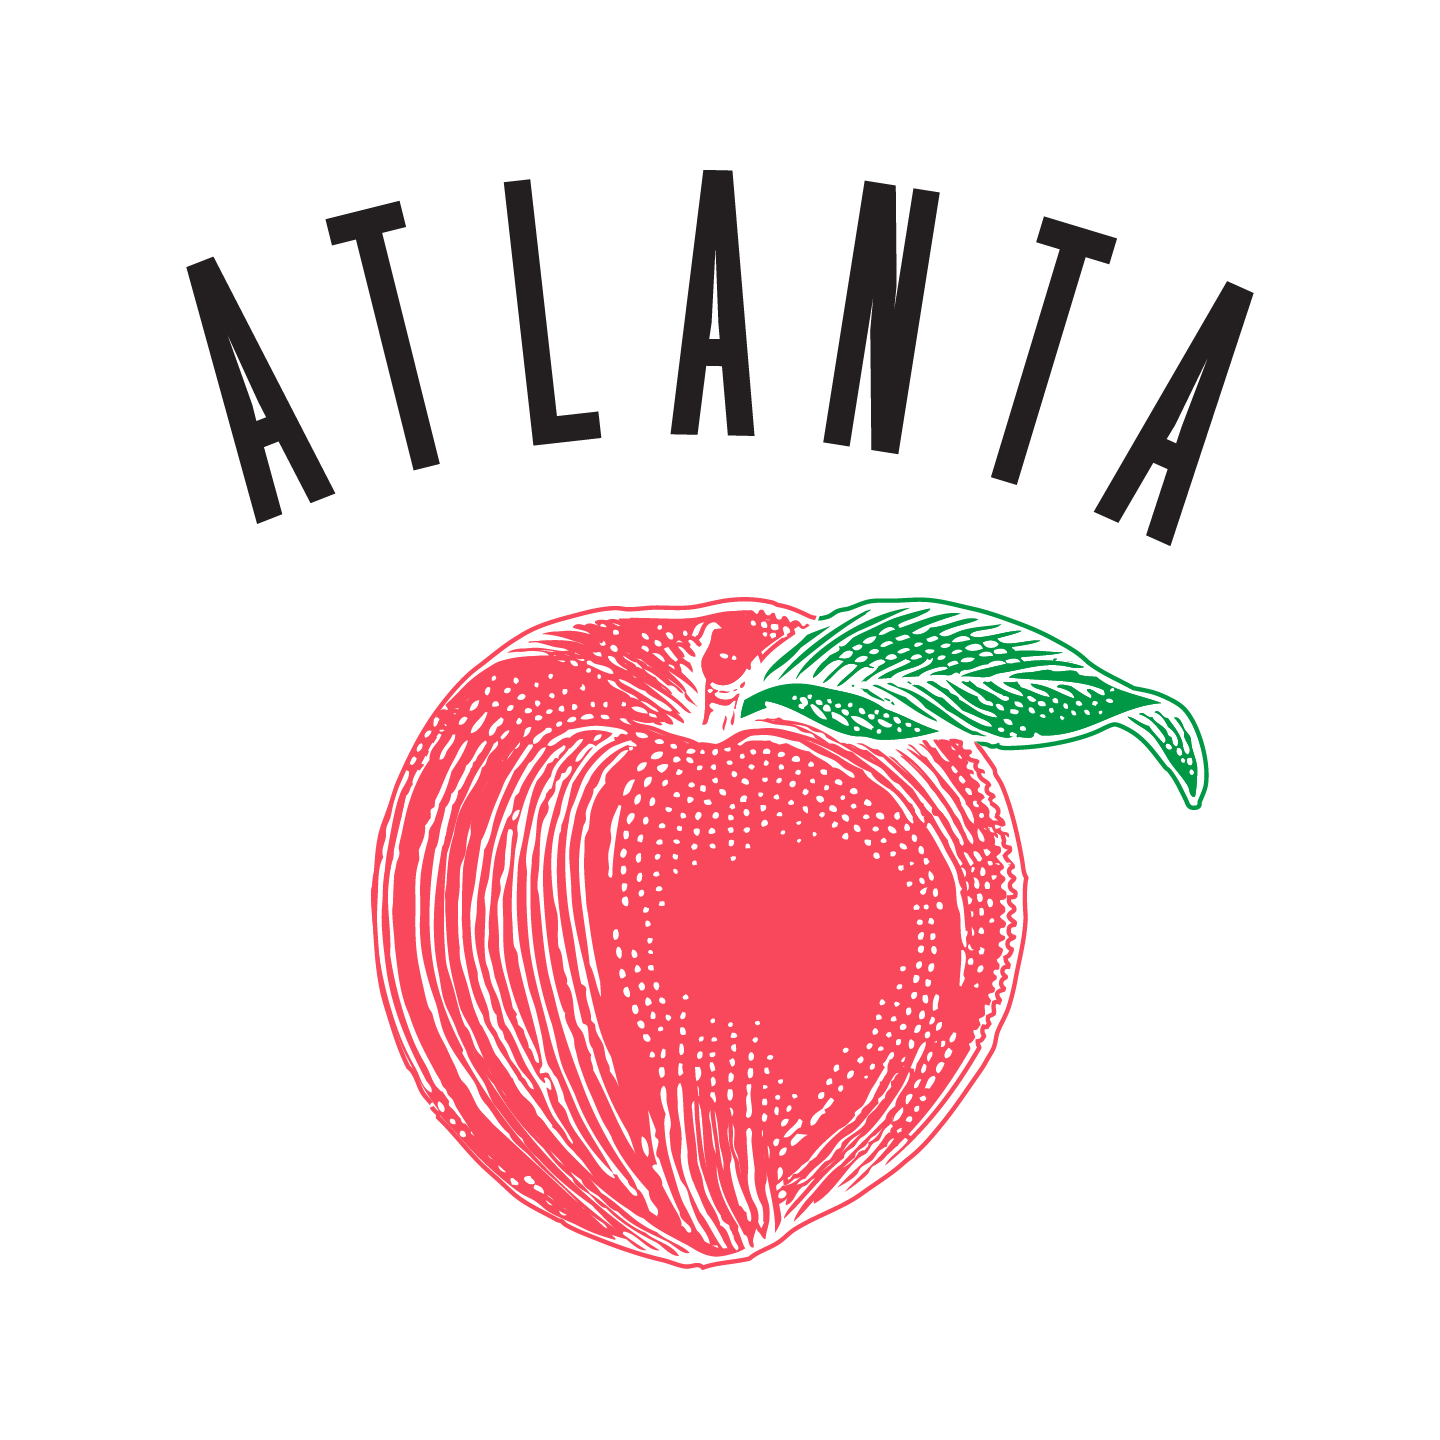 Peachtree-Graphic.png#asset:14234